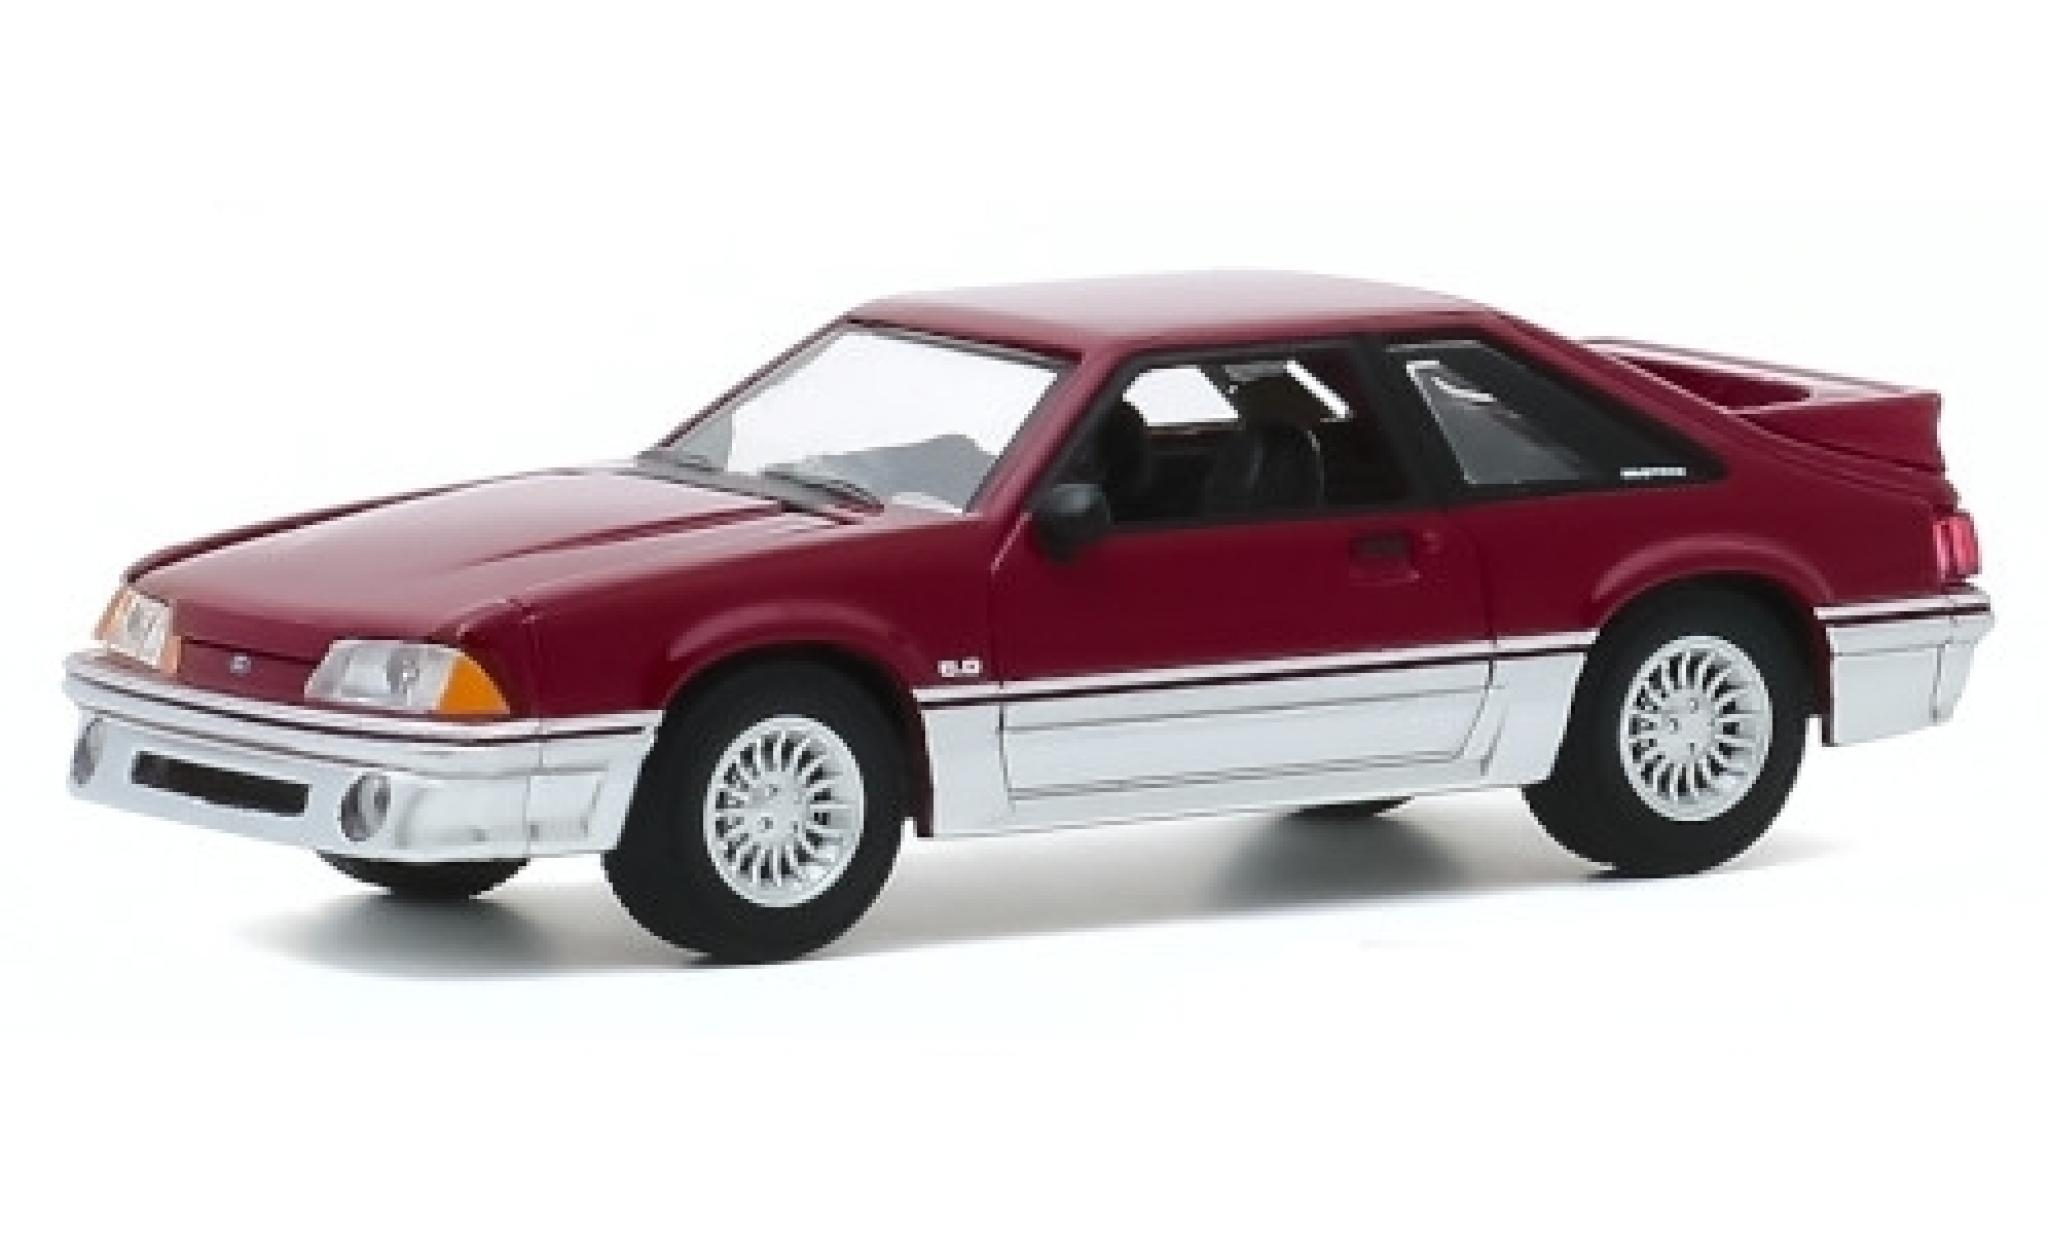 Ford Mustang 1/64 Greenlight GT rouge/grise 1988